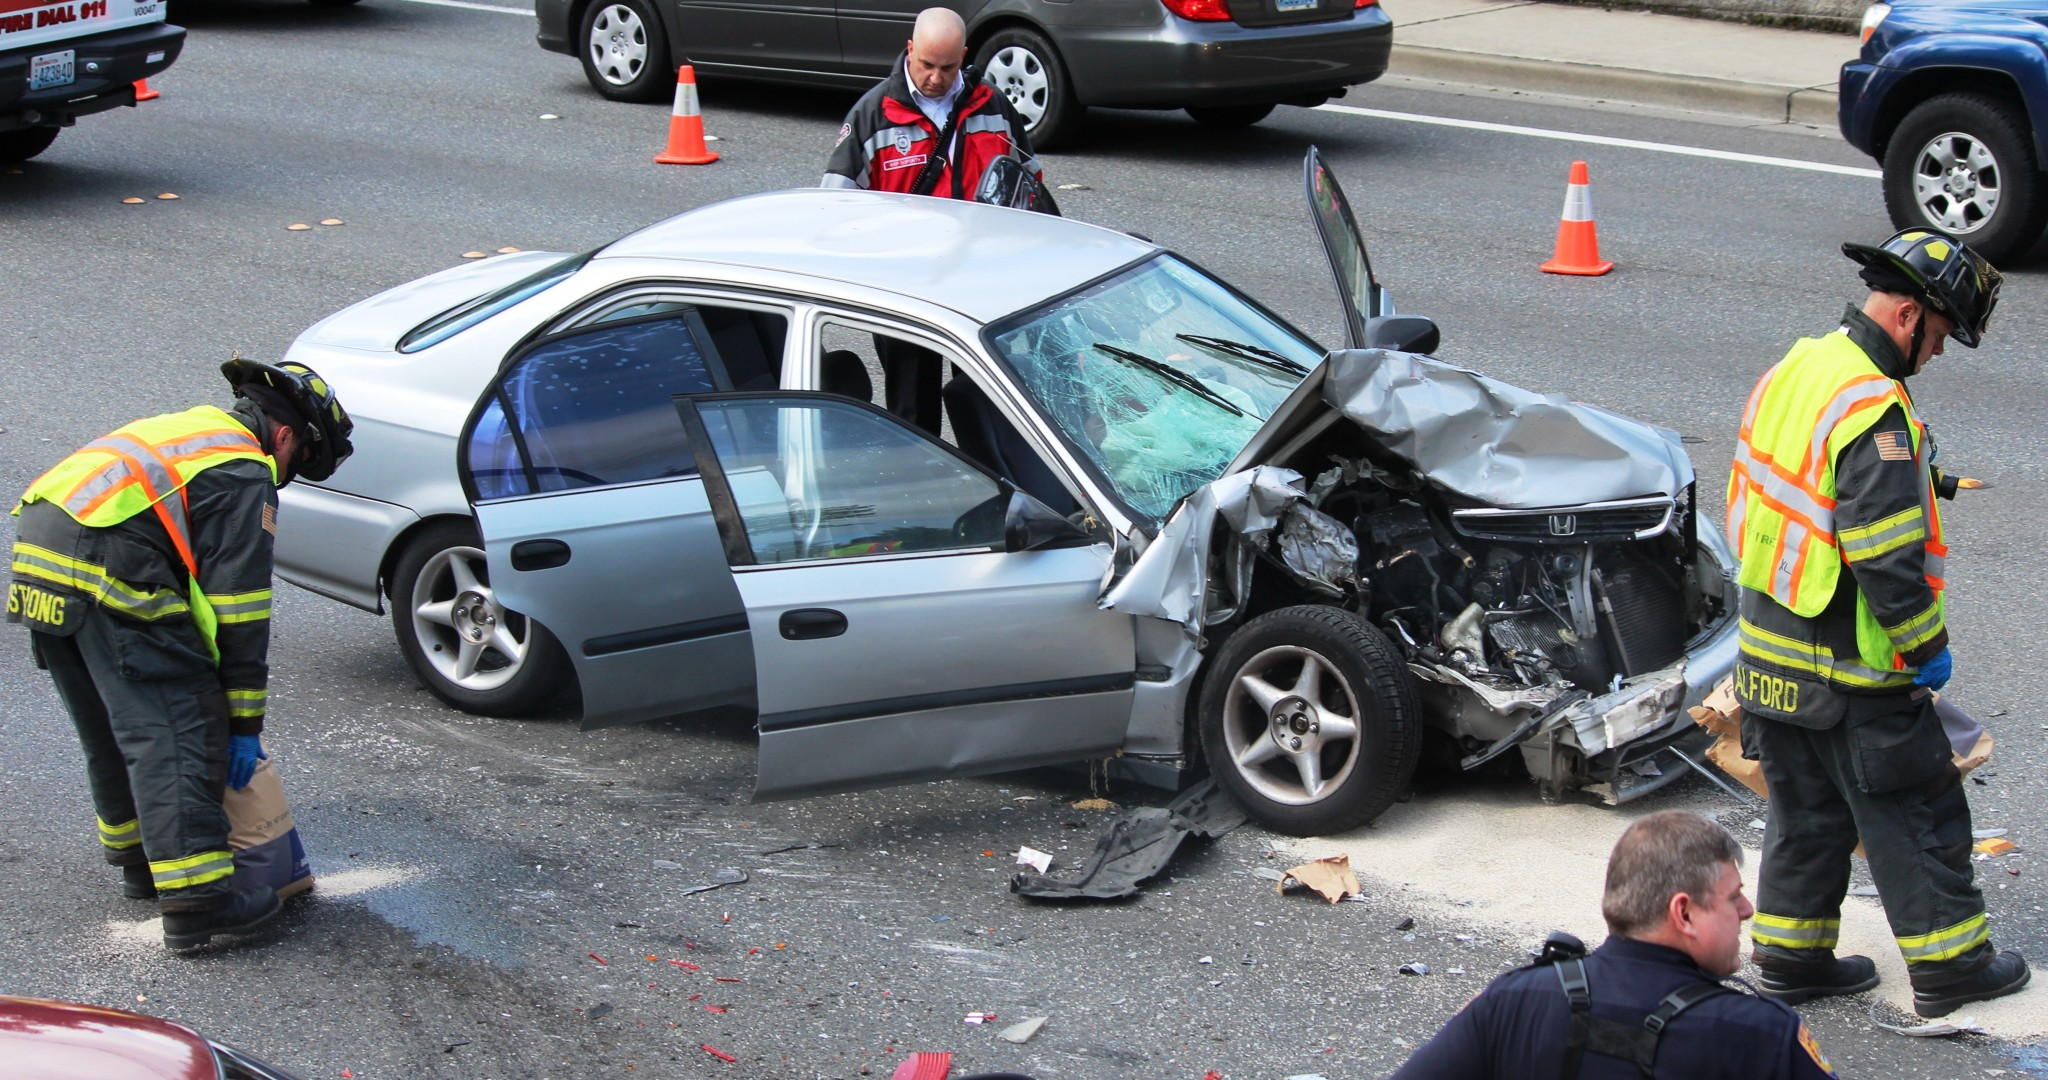 6 Car Crash Ties Up 112th At Start of Afternoon mute